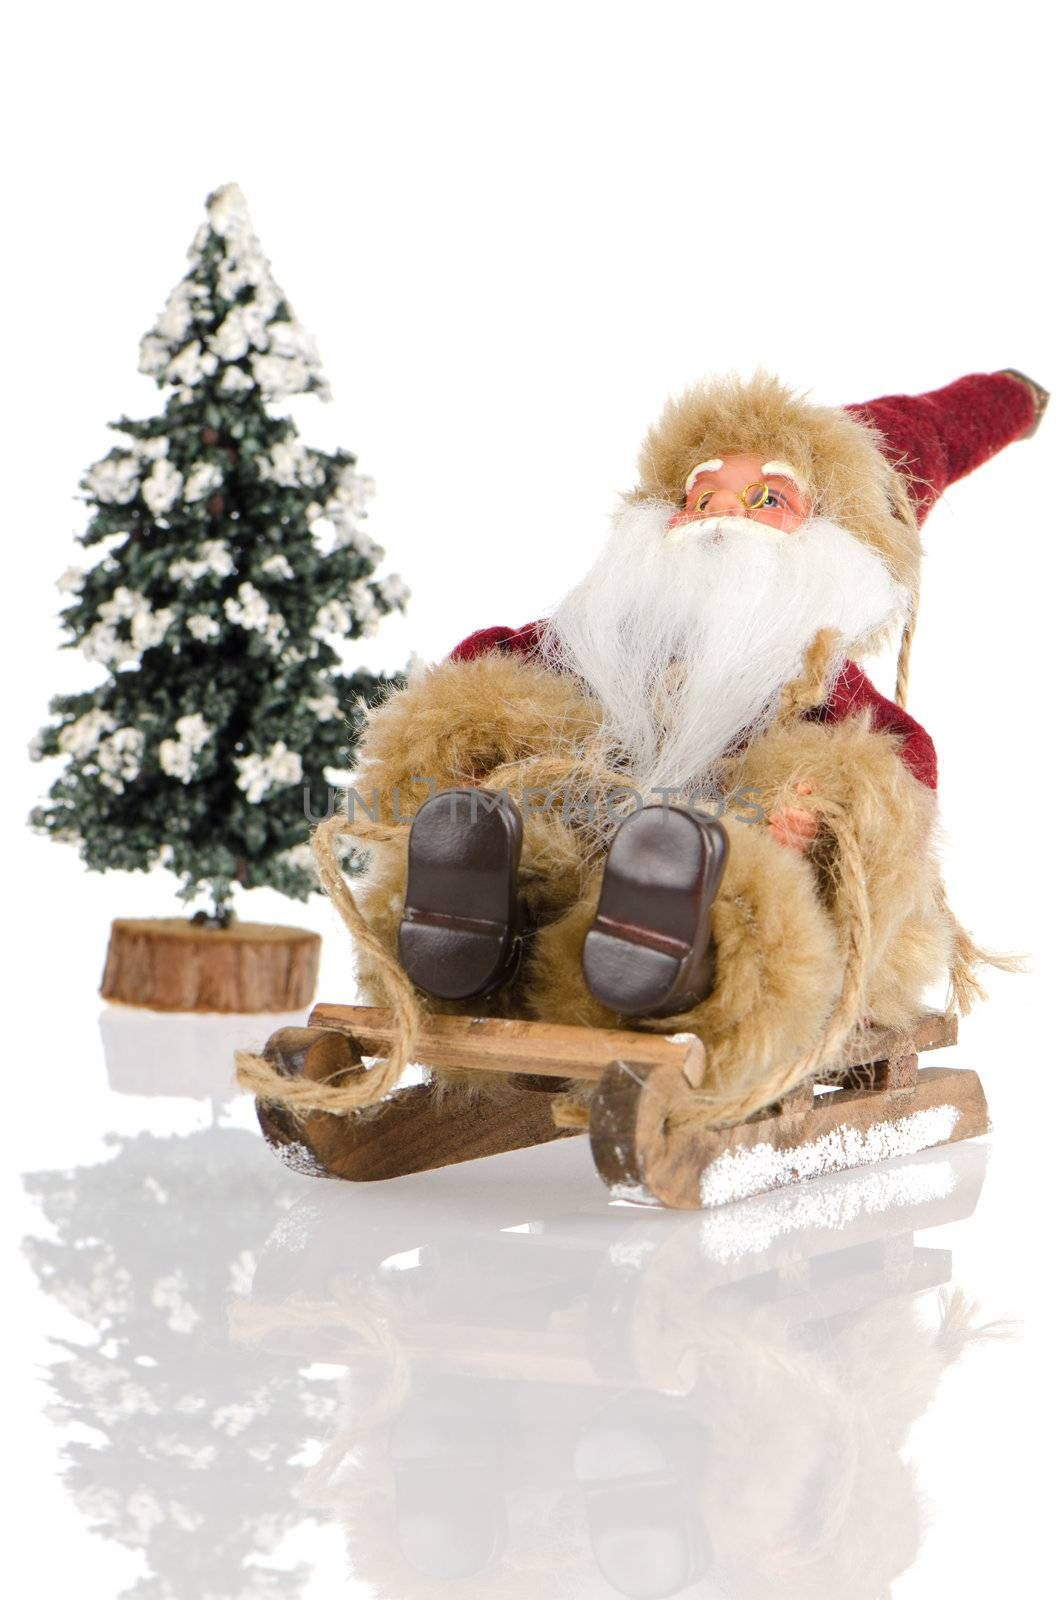 Miniature of Santa Claus on sleigh and a pine tree with snow, on white reflective background.